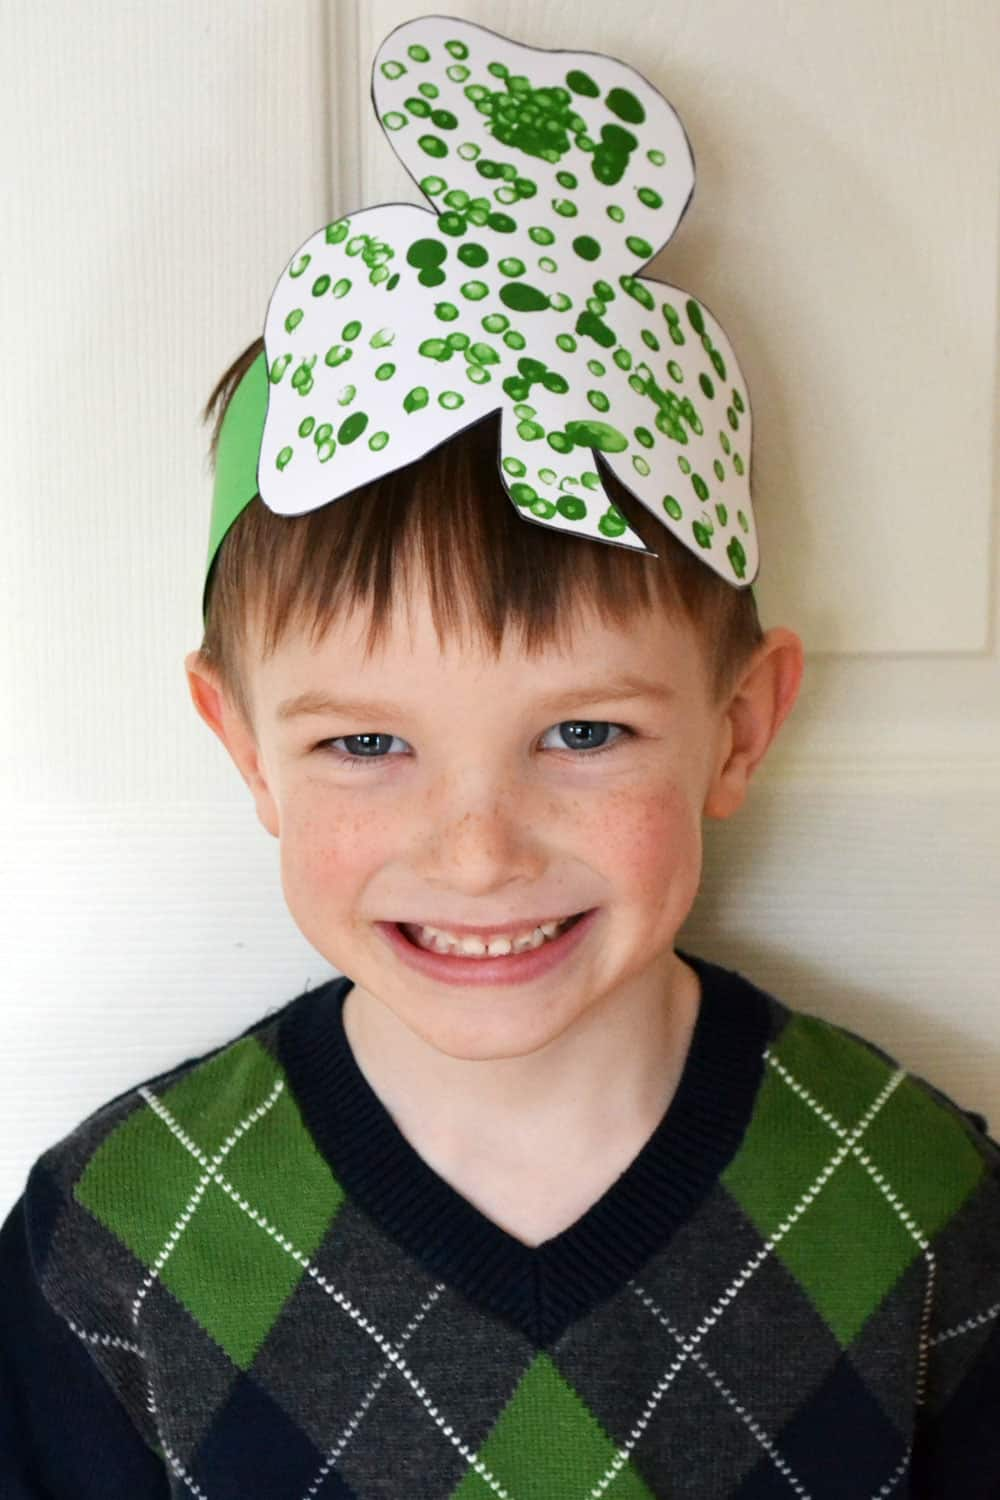 A smiling boy wearing a headband with a cut-out shamrock shape on it.